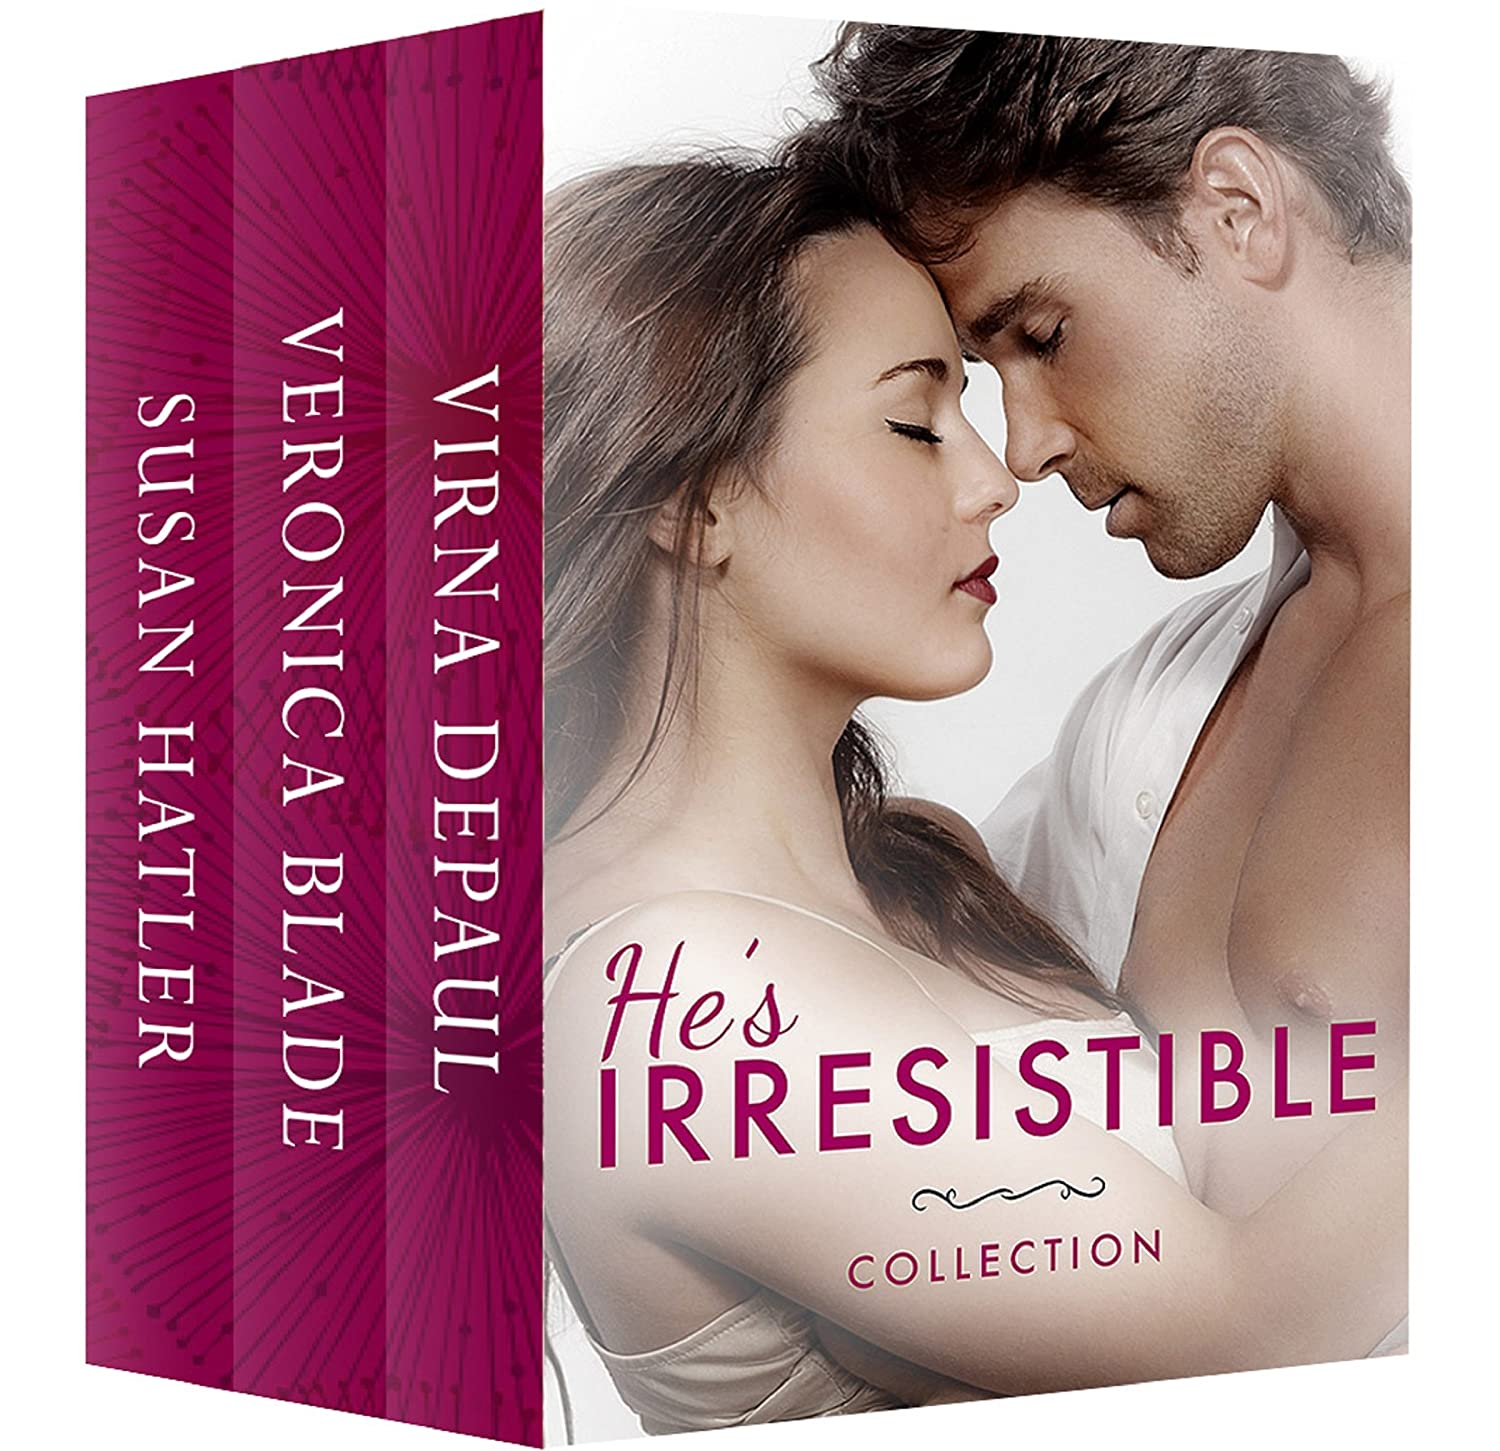 He's Irresistible: Contemporary Romance Boxed Set by Susan Hatler